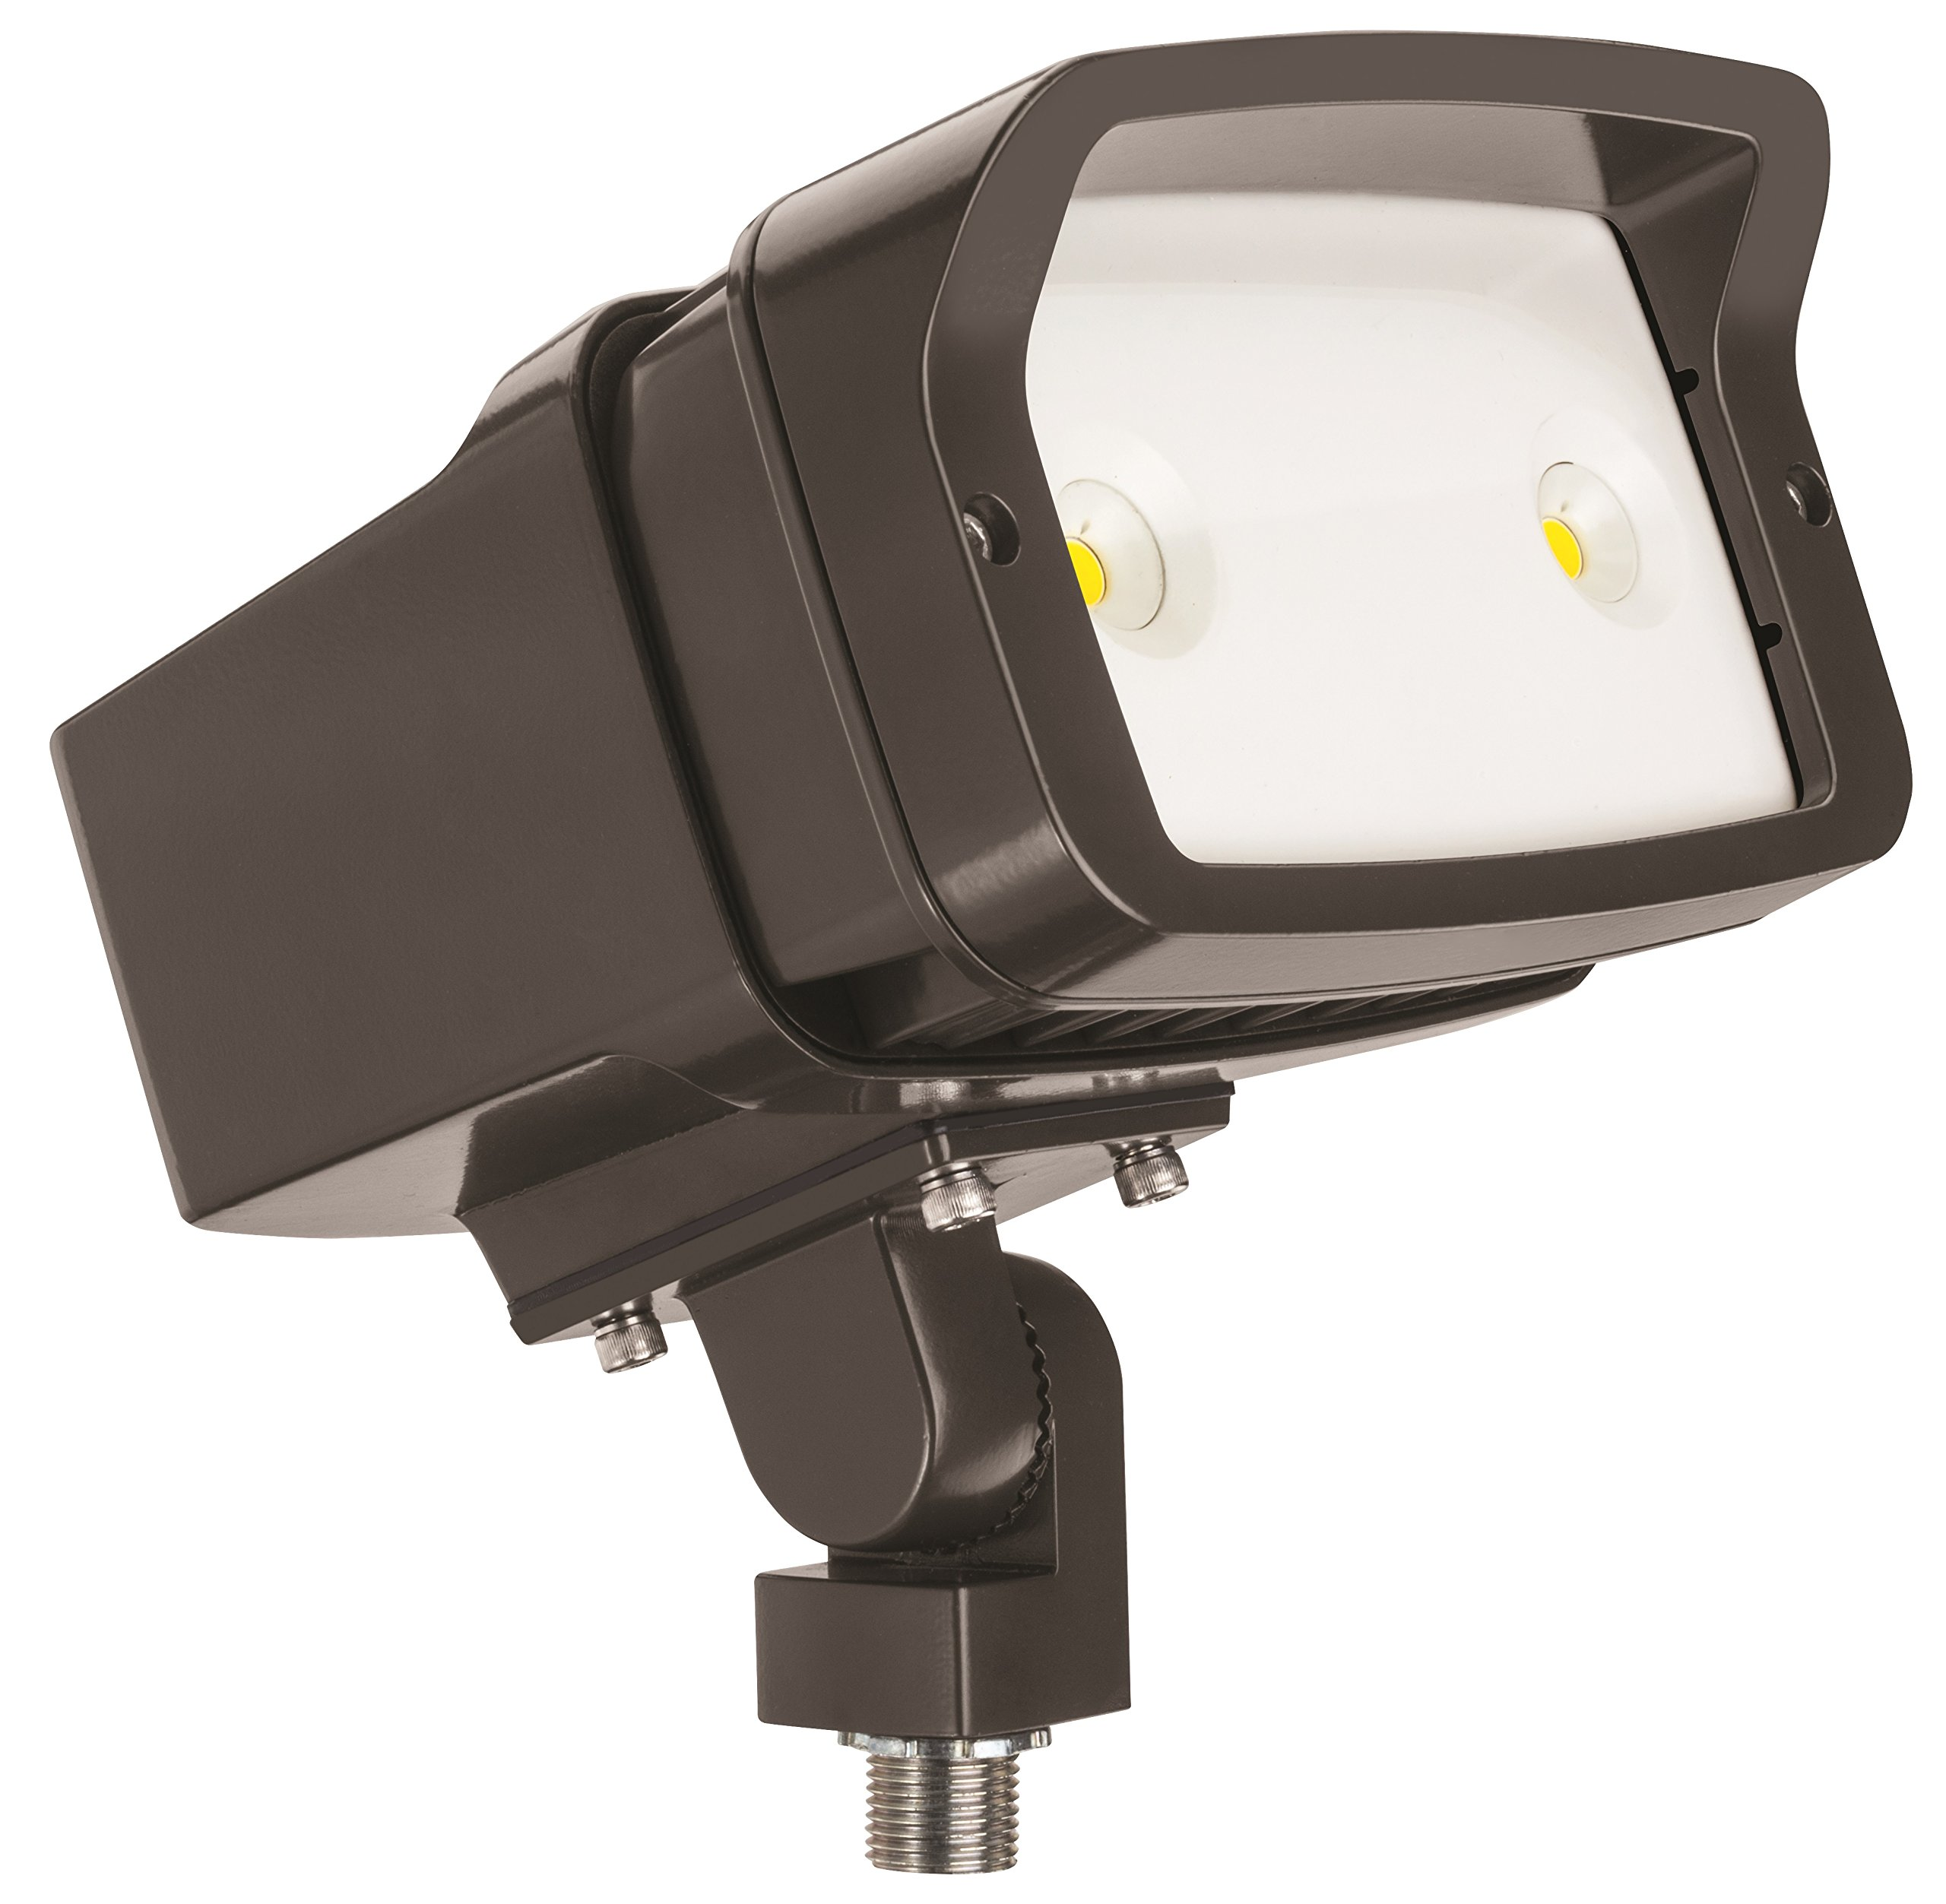 Lithonia Lighting OFL1 LED P1 40K MVOLT THK DDBXD M4 4000K Color Temperature Size 1 Floodlight with P1 Performance Package - Knuckle Mounted